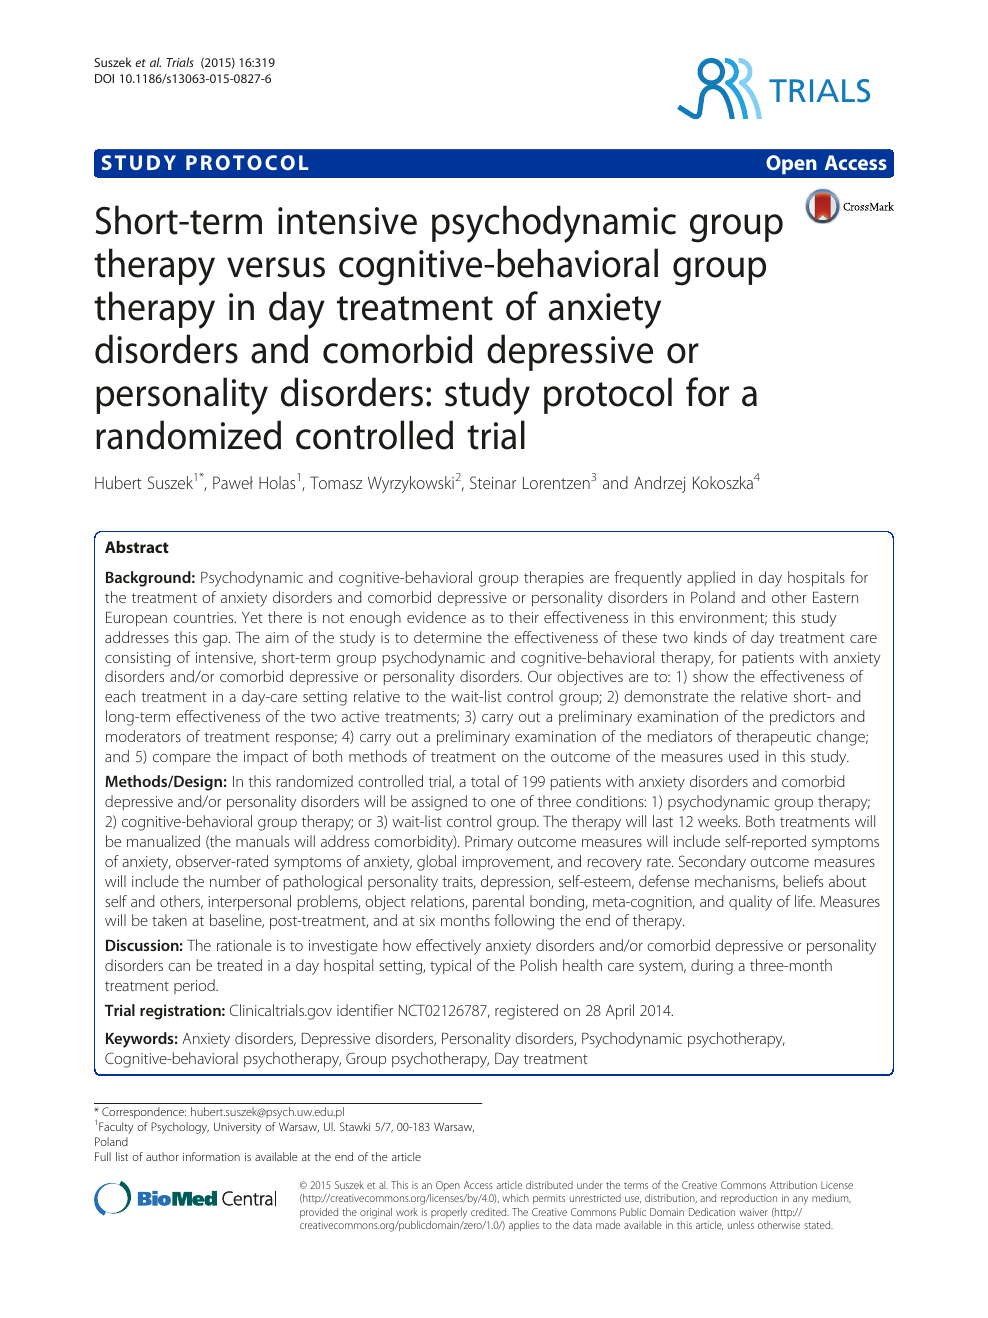 Intensive Cognitive Behavioral Therapy >> Short Term Intensive Psychodynamic Group Therapy Versus Cognitive